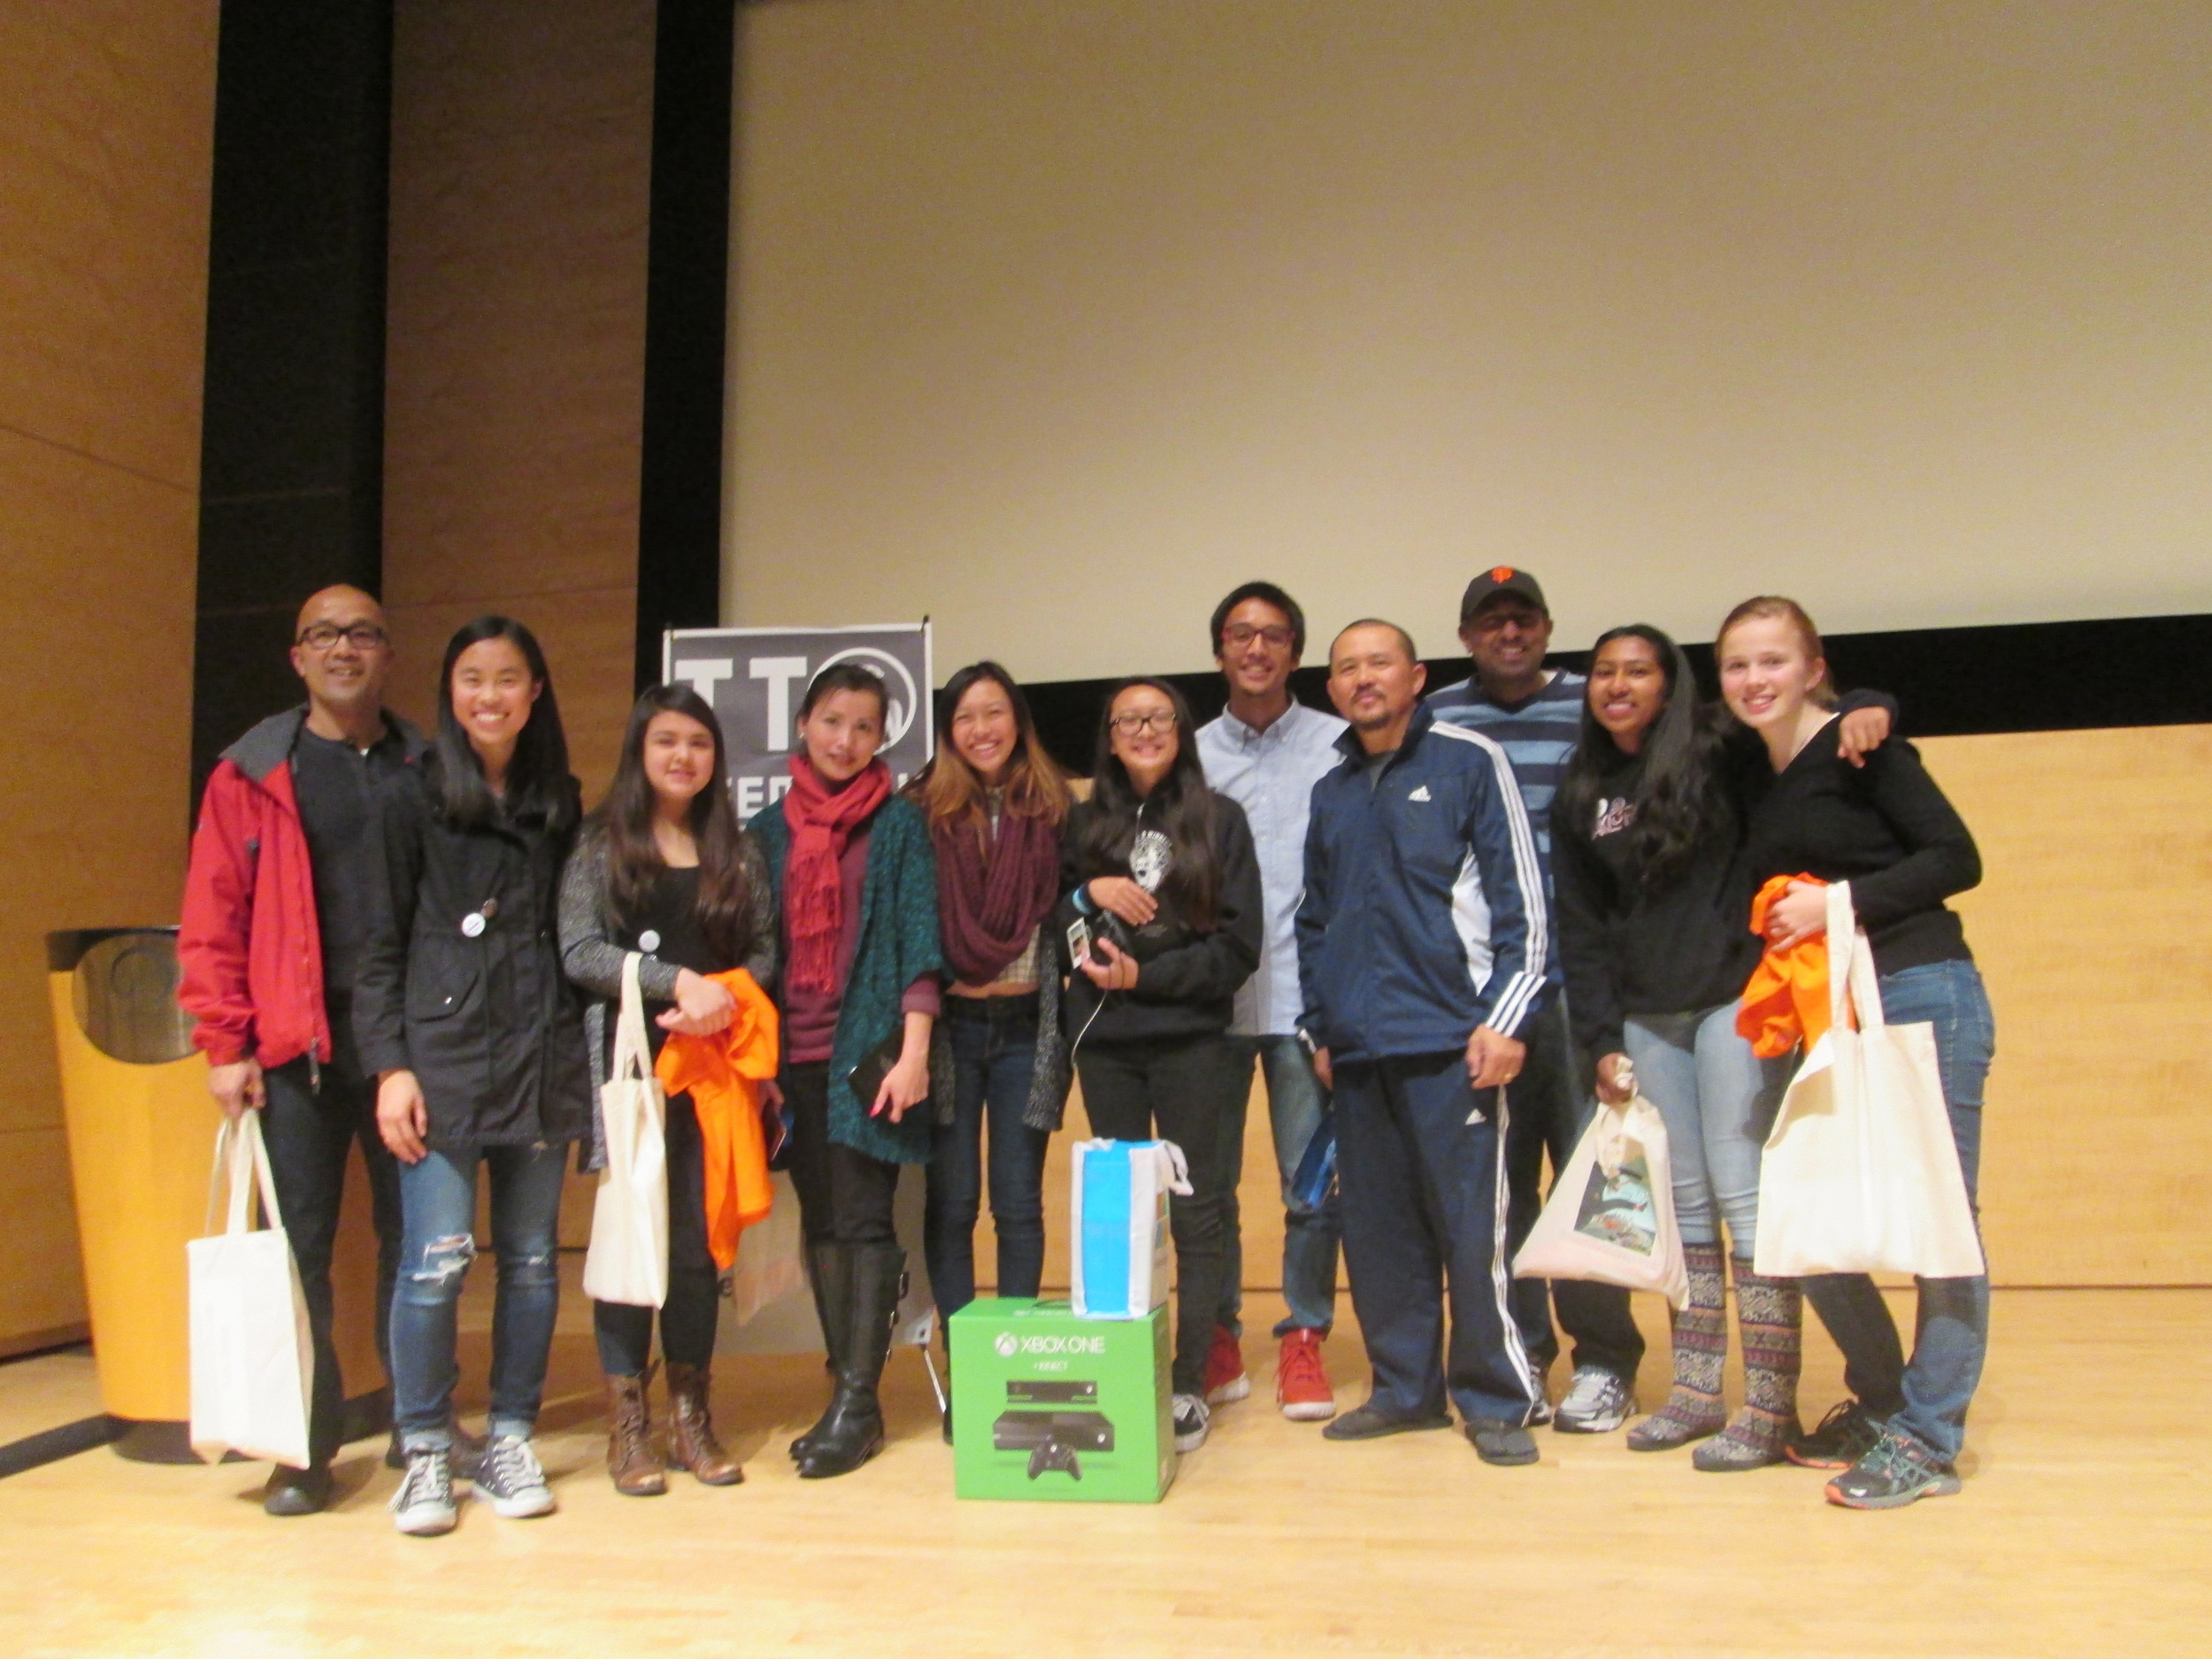 Winning Team photo with prizes from Microsoft, Friends of the SF Public Library, and the International School of the Peninsula